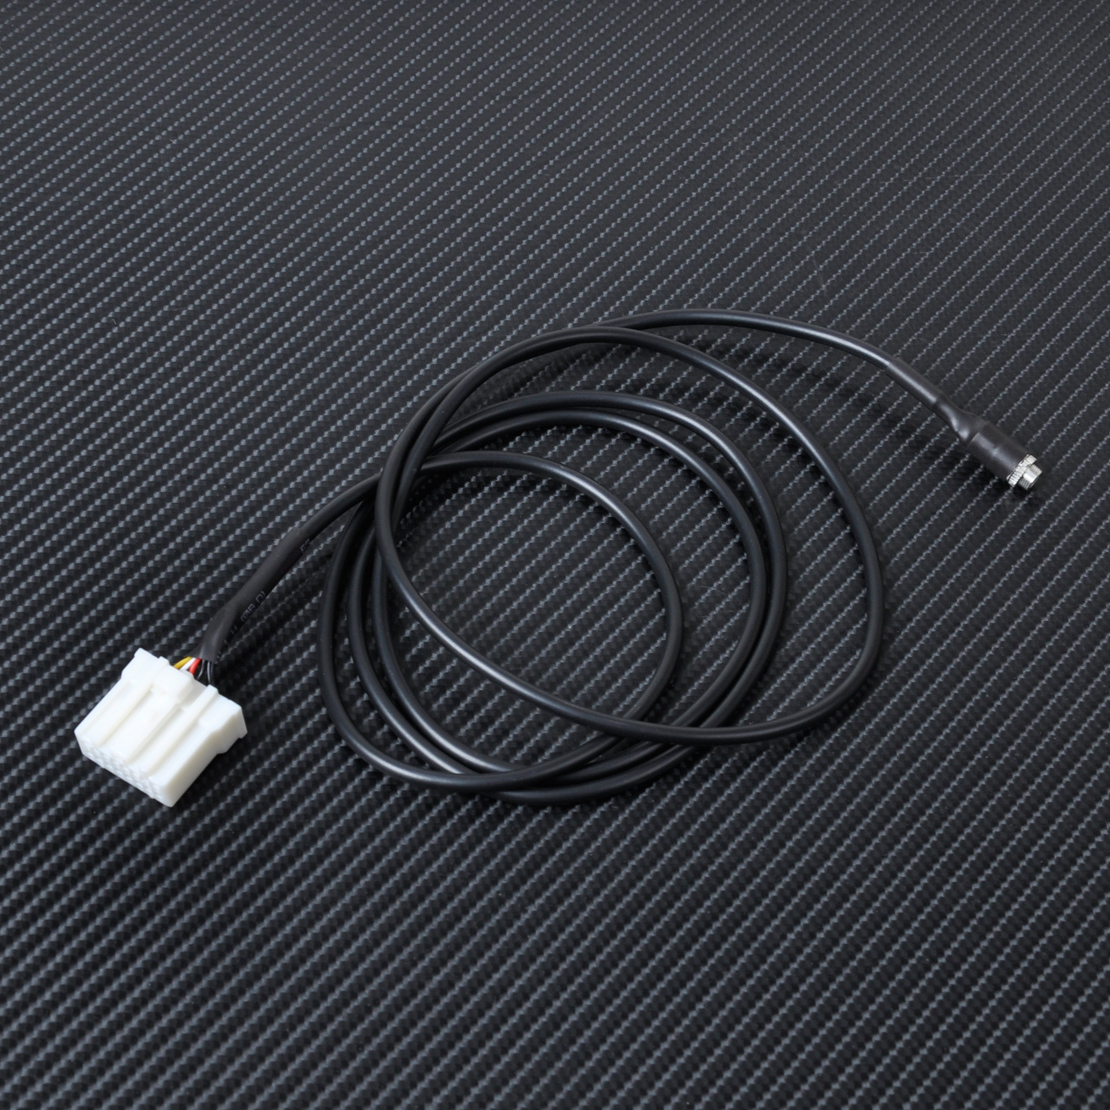 Car AUX Cable Input Female Interface Adapter For Mazda 3 6 MX-5 RX8 Besturn  B70 702706034944   eBay